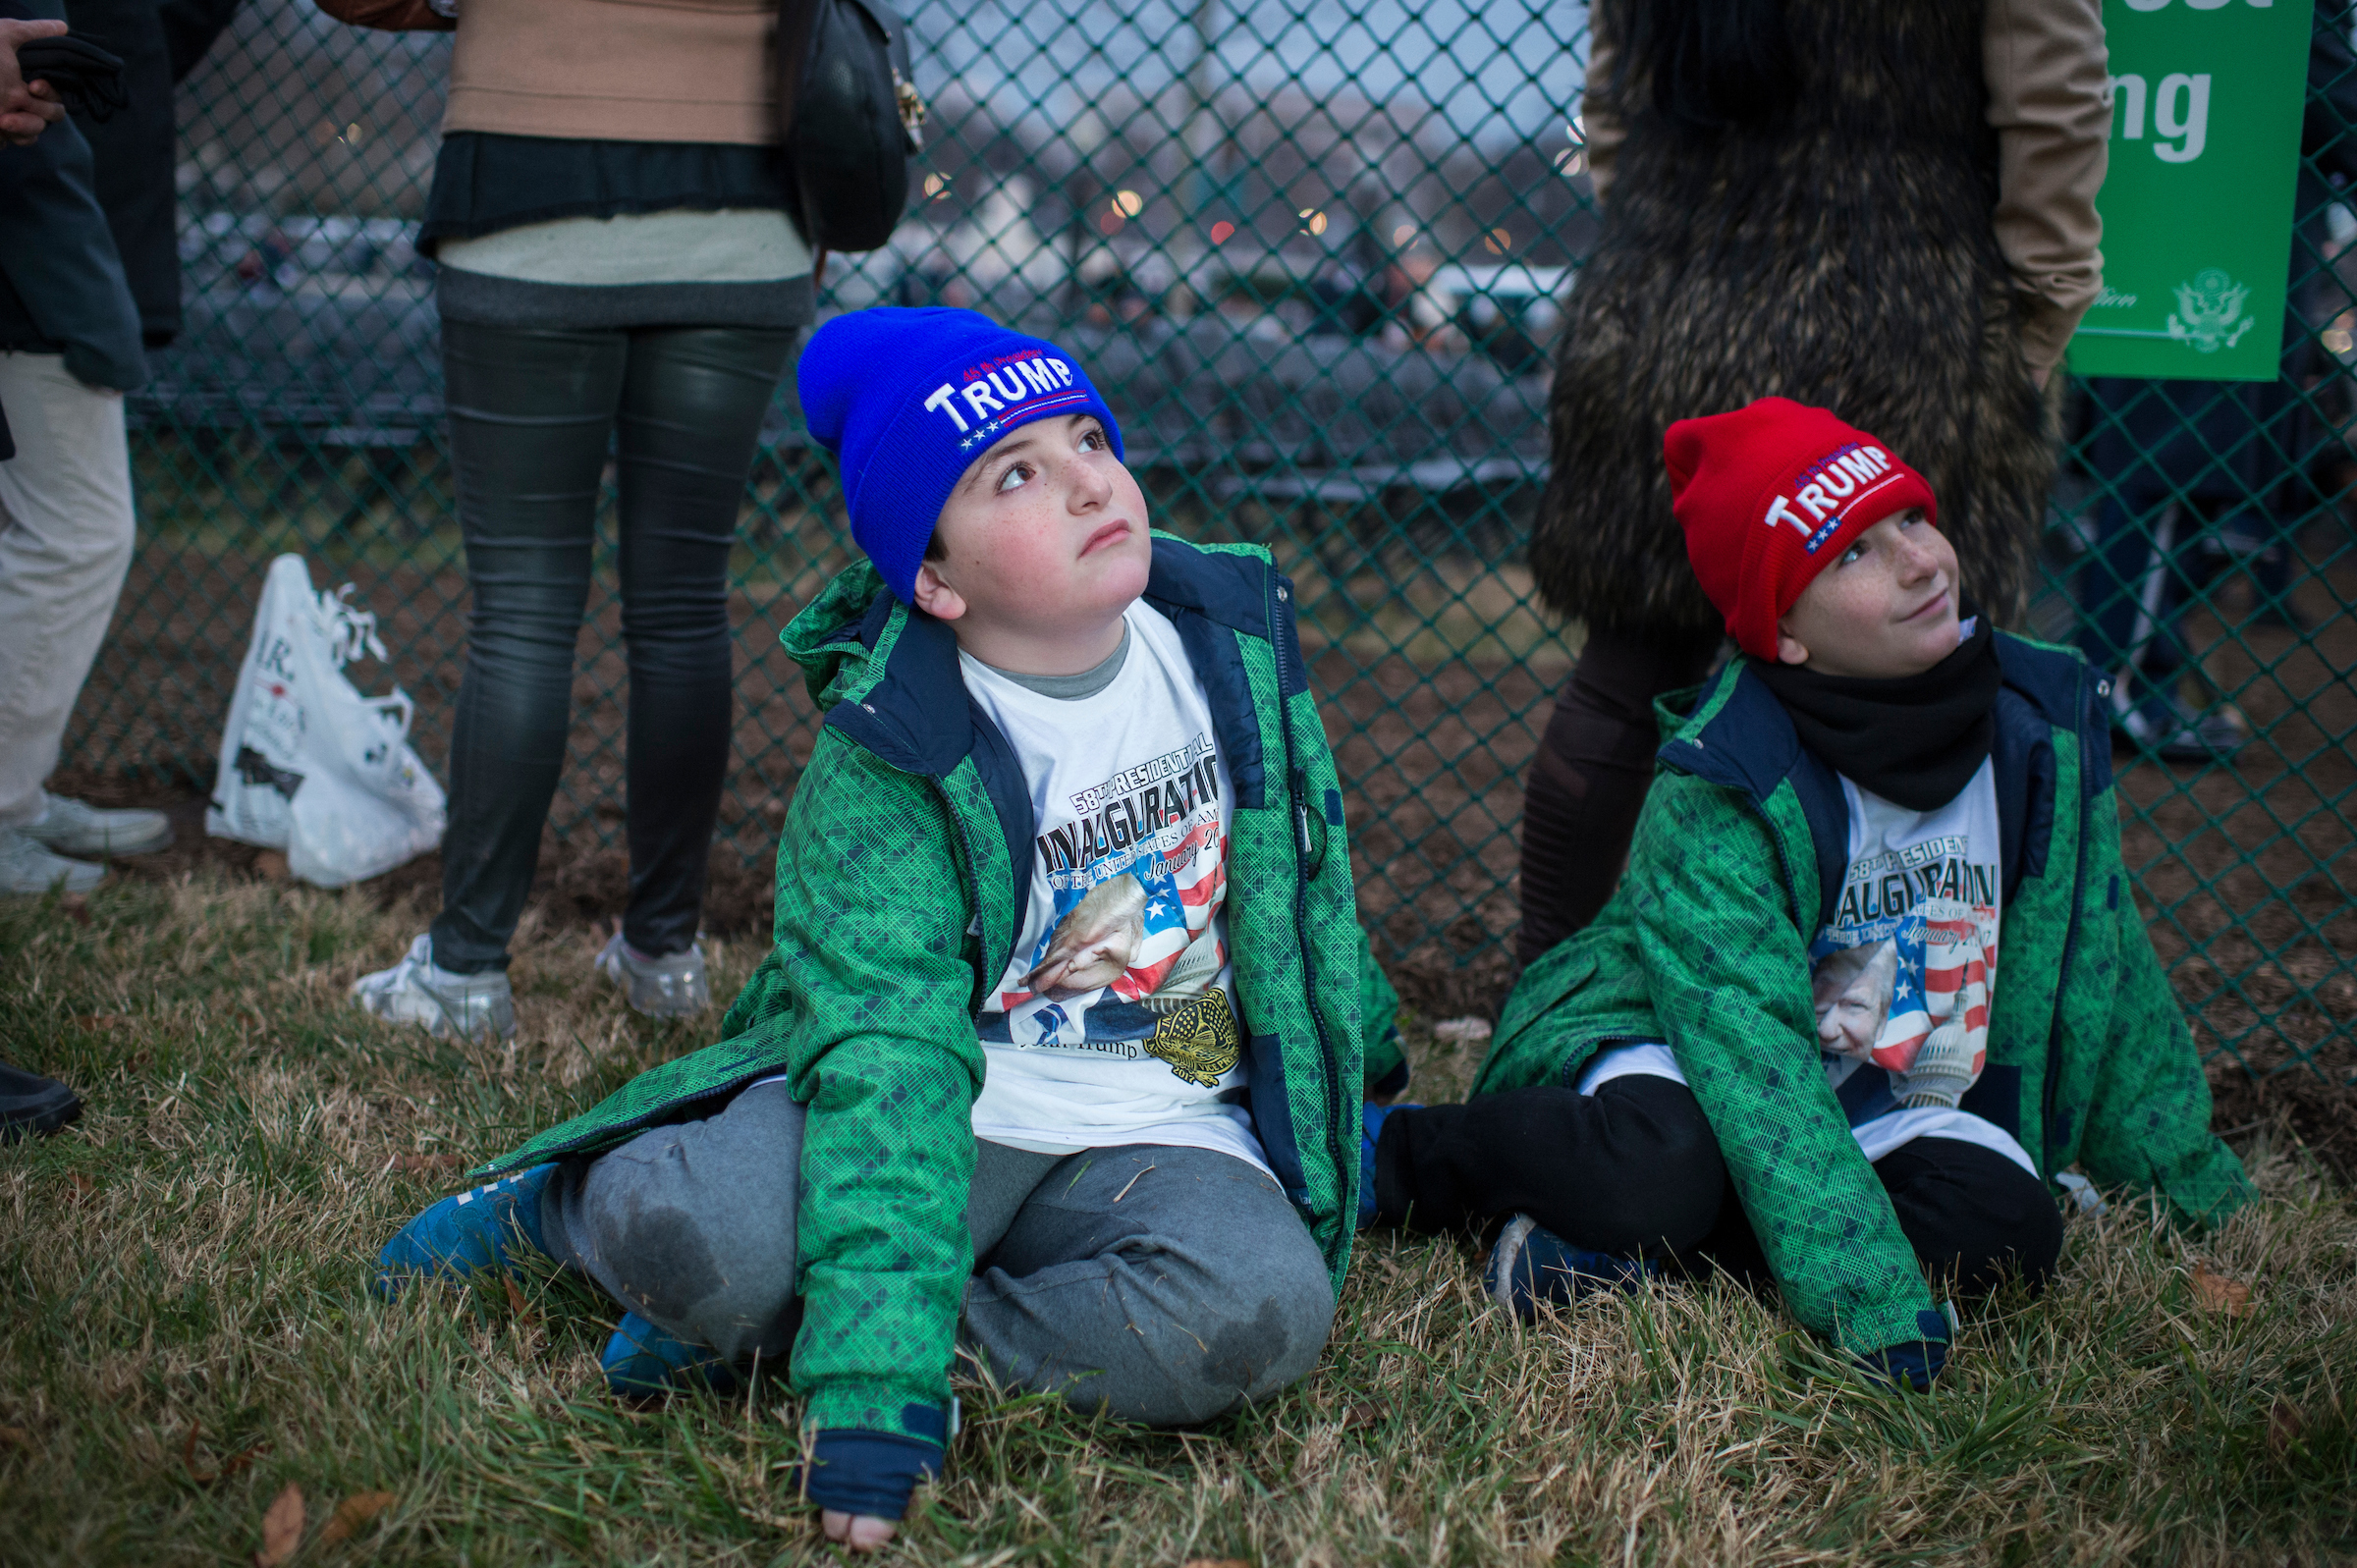 Elias Fineman, 7, left, and his brother Alexander, 9, from Las Vegas, wait on the West Front of the Capitol on Inauguration Day. (Tom Williams/CQ Roll Call)